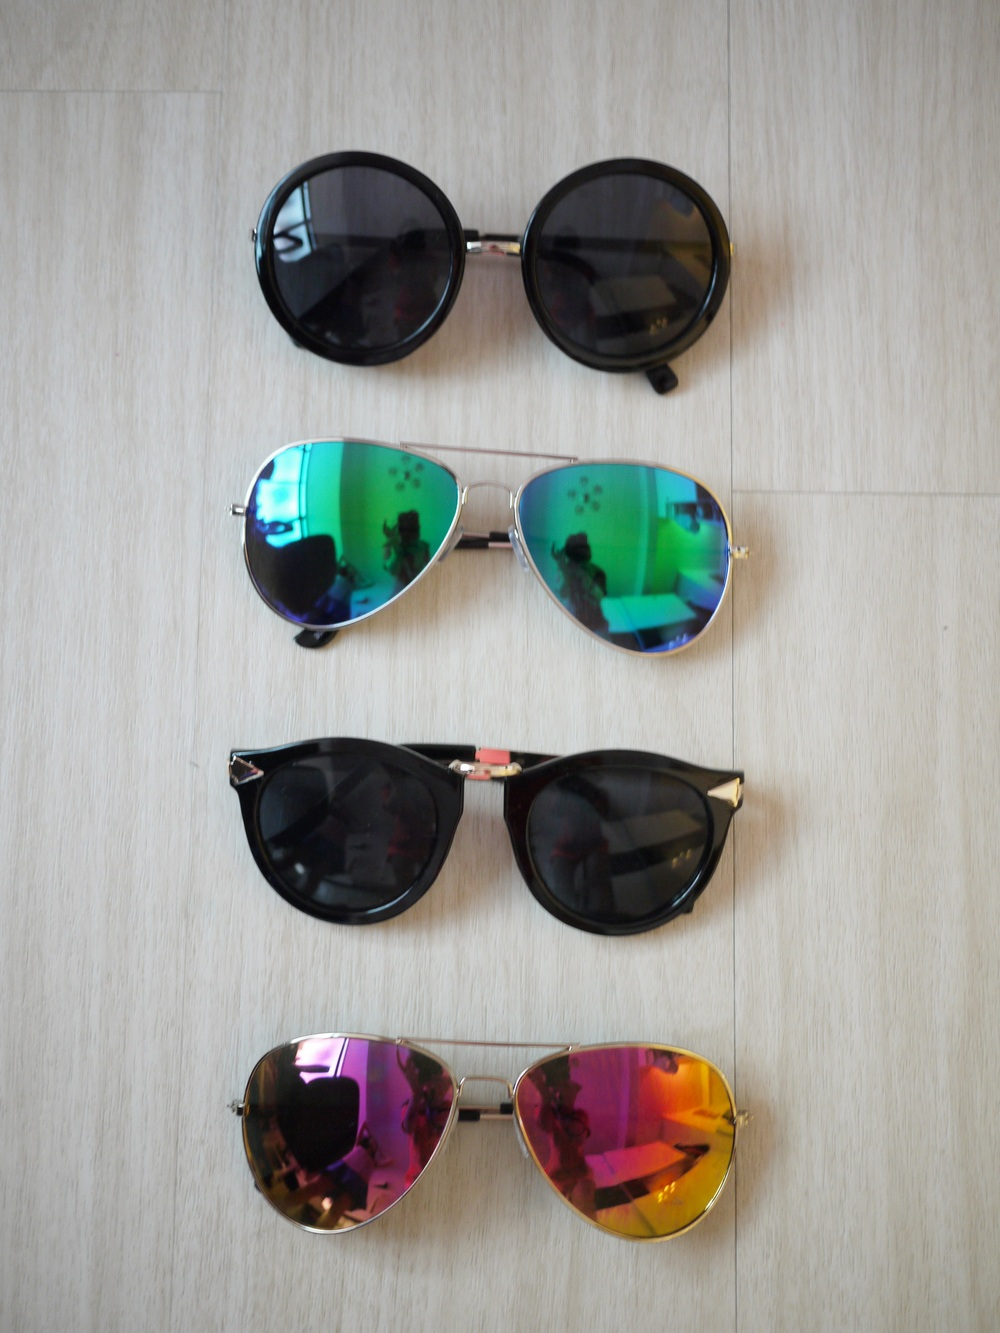 Mirrored sunglasses [水銀墨鏡 ] - Gosis604.com